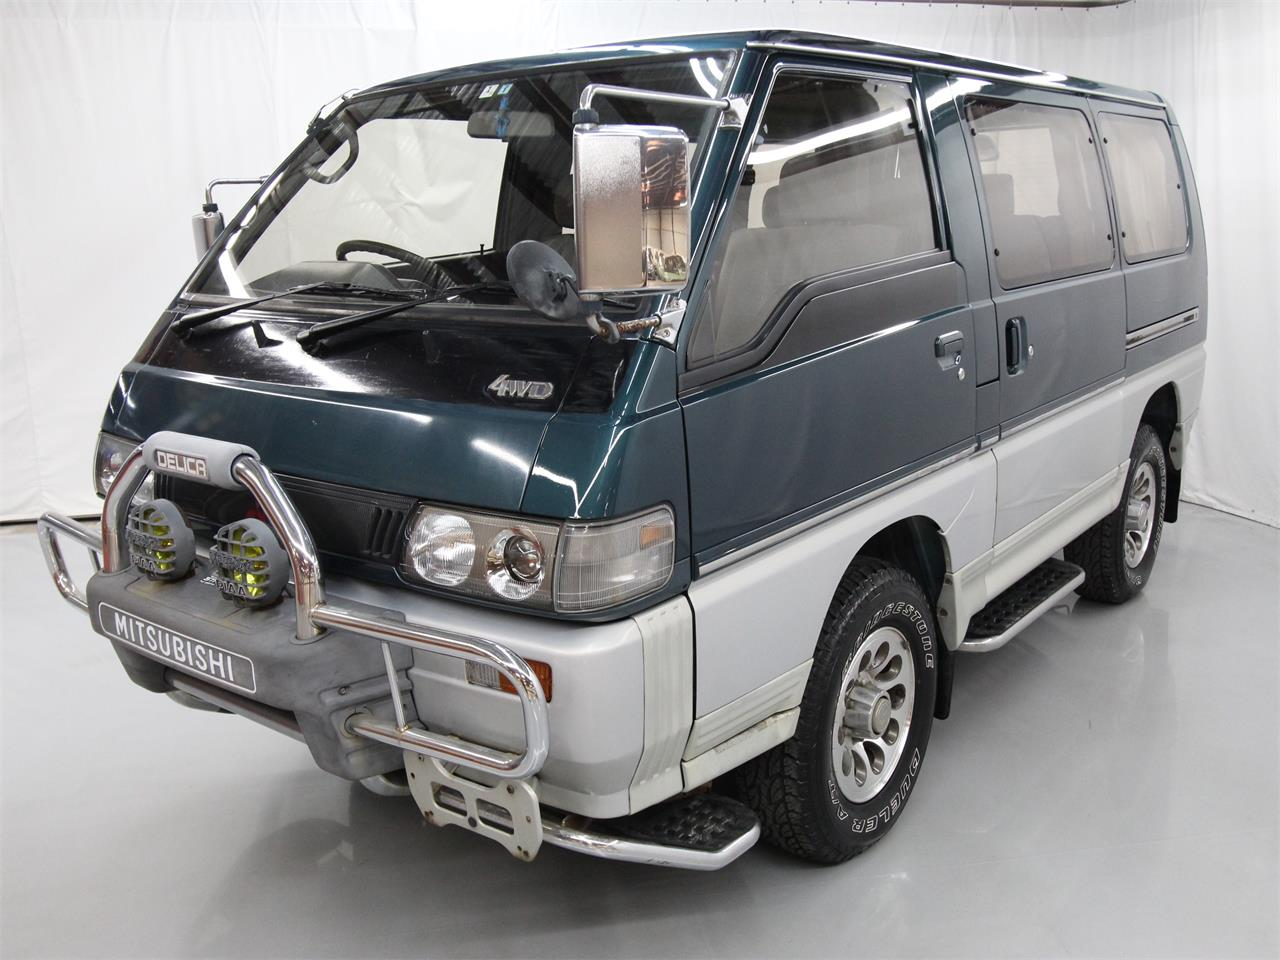 1994 Mitsubishi Delica (CC-1255693) for sale in Christiansburg, Virginia